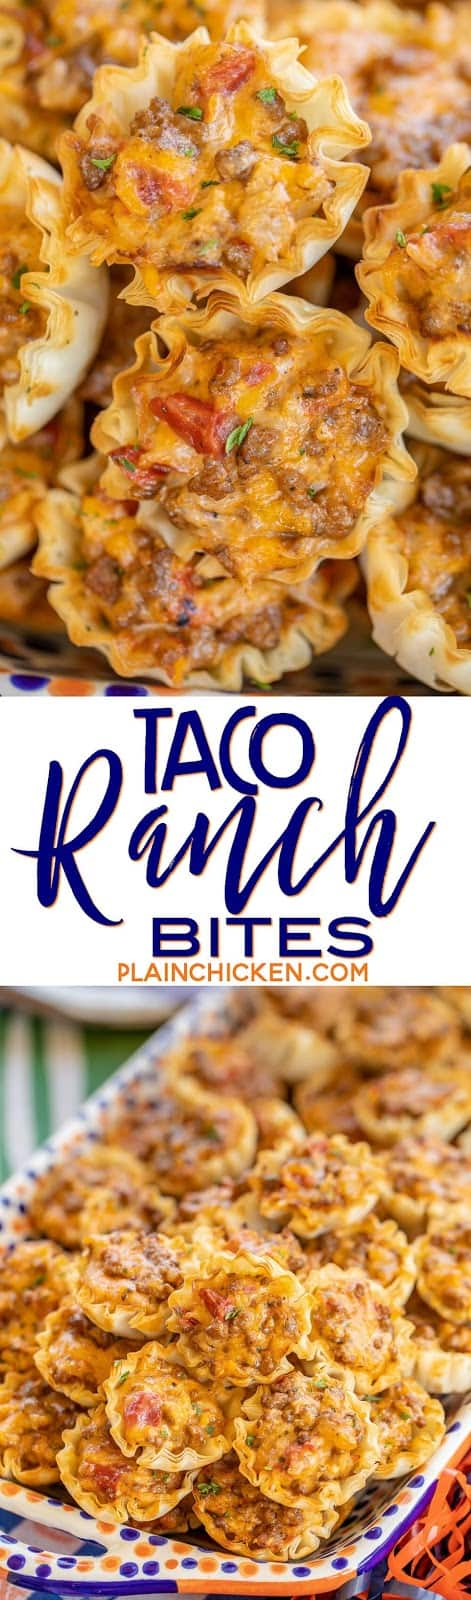 Taco Ranch Bites - seriously delicious!! Only 6 ingredients! Ground beef, taco seasoning, diced tomatoes and green chiles, cheddar cheese, ranch dressing and phyllo tart shells. Can make ahead and refrigerate or freeze for later. I always have a batch in the freezer for a quick snack! Great for tailgating and parties! I never come home with leftovers. Everyone LOVES these cheesy taco bites. #tailgating #taco #beef #ranch #appetizer #partyfood #freezermeal